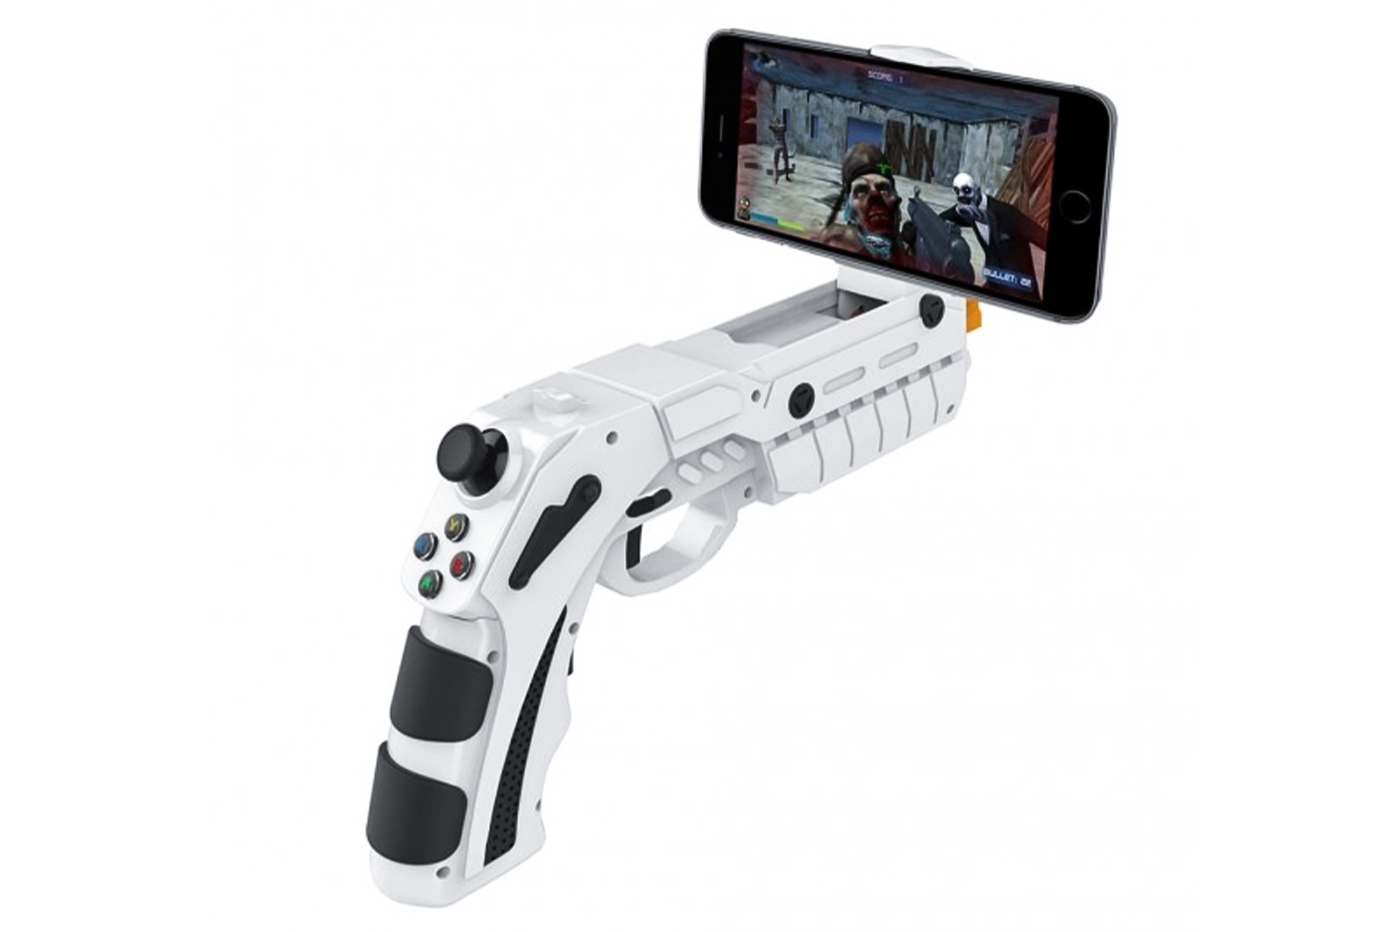 Pistola joystick bluetooth controller wireless ricaricabile supporto telefono